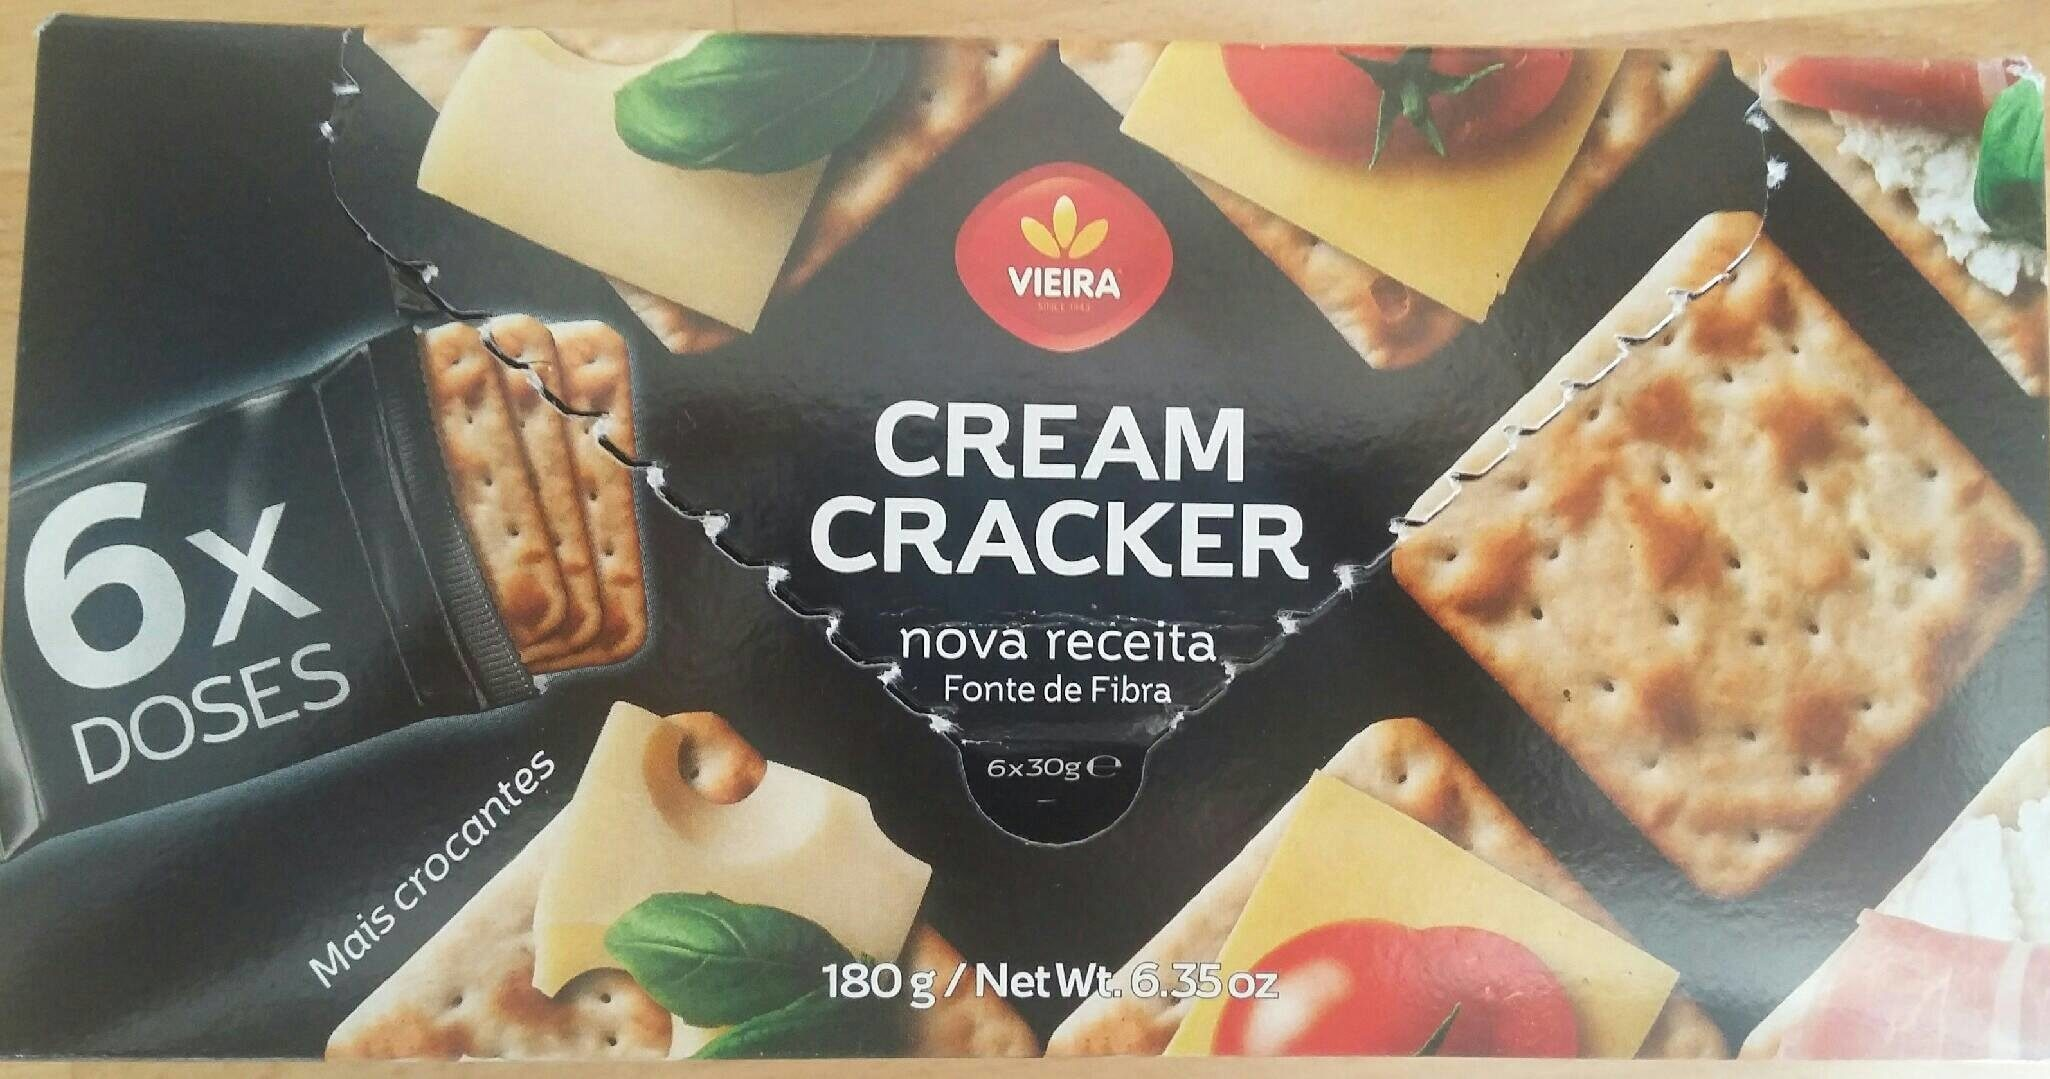 a cream cracker essay A cream cracker under the settee is a dramatic monologue written by alan bennett in 1987 for television, as part of his talking heads series for the bbc.